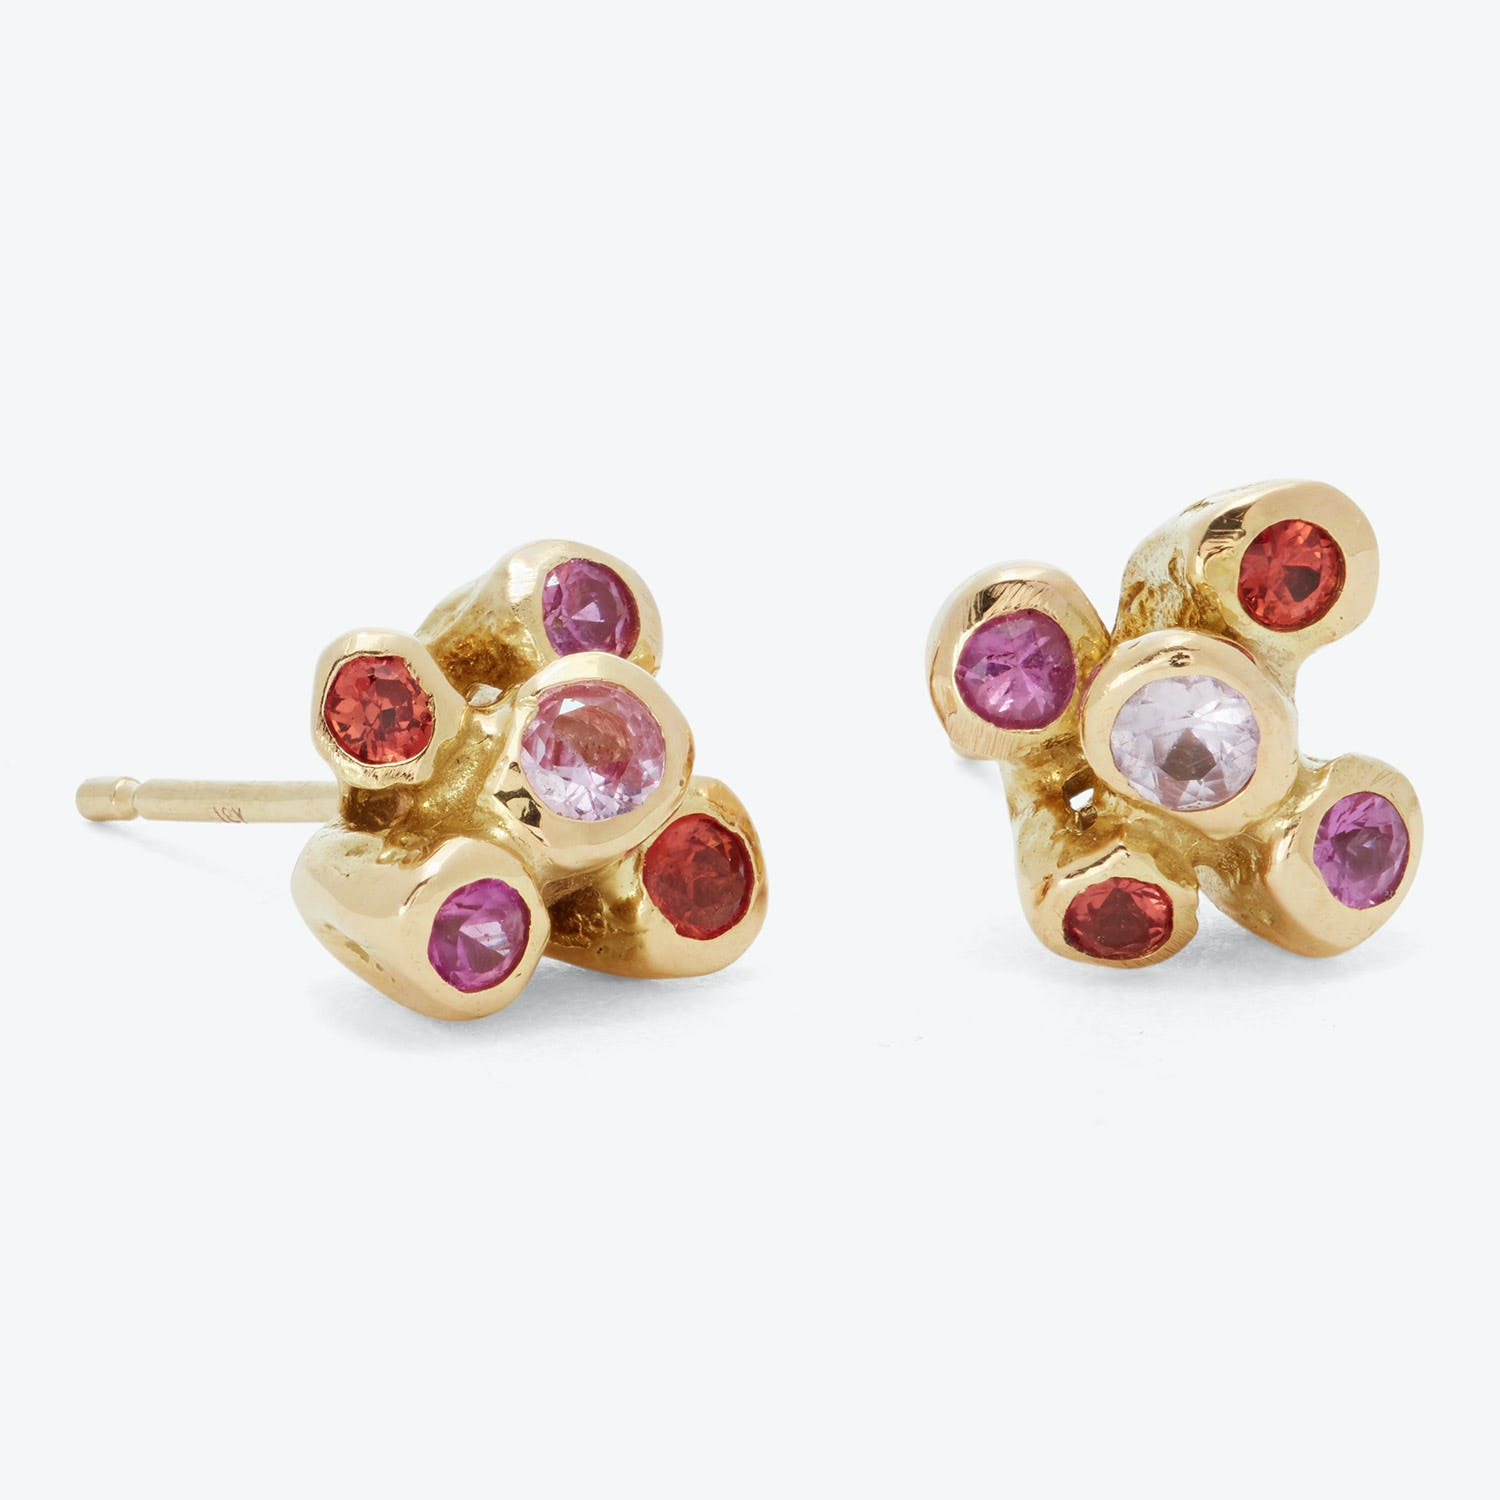 Kimberlin Brown Pink Sapphire Large Sea Anemone Stud Earrings